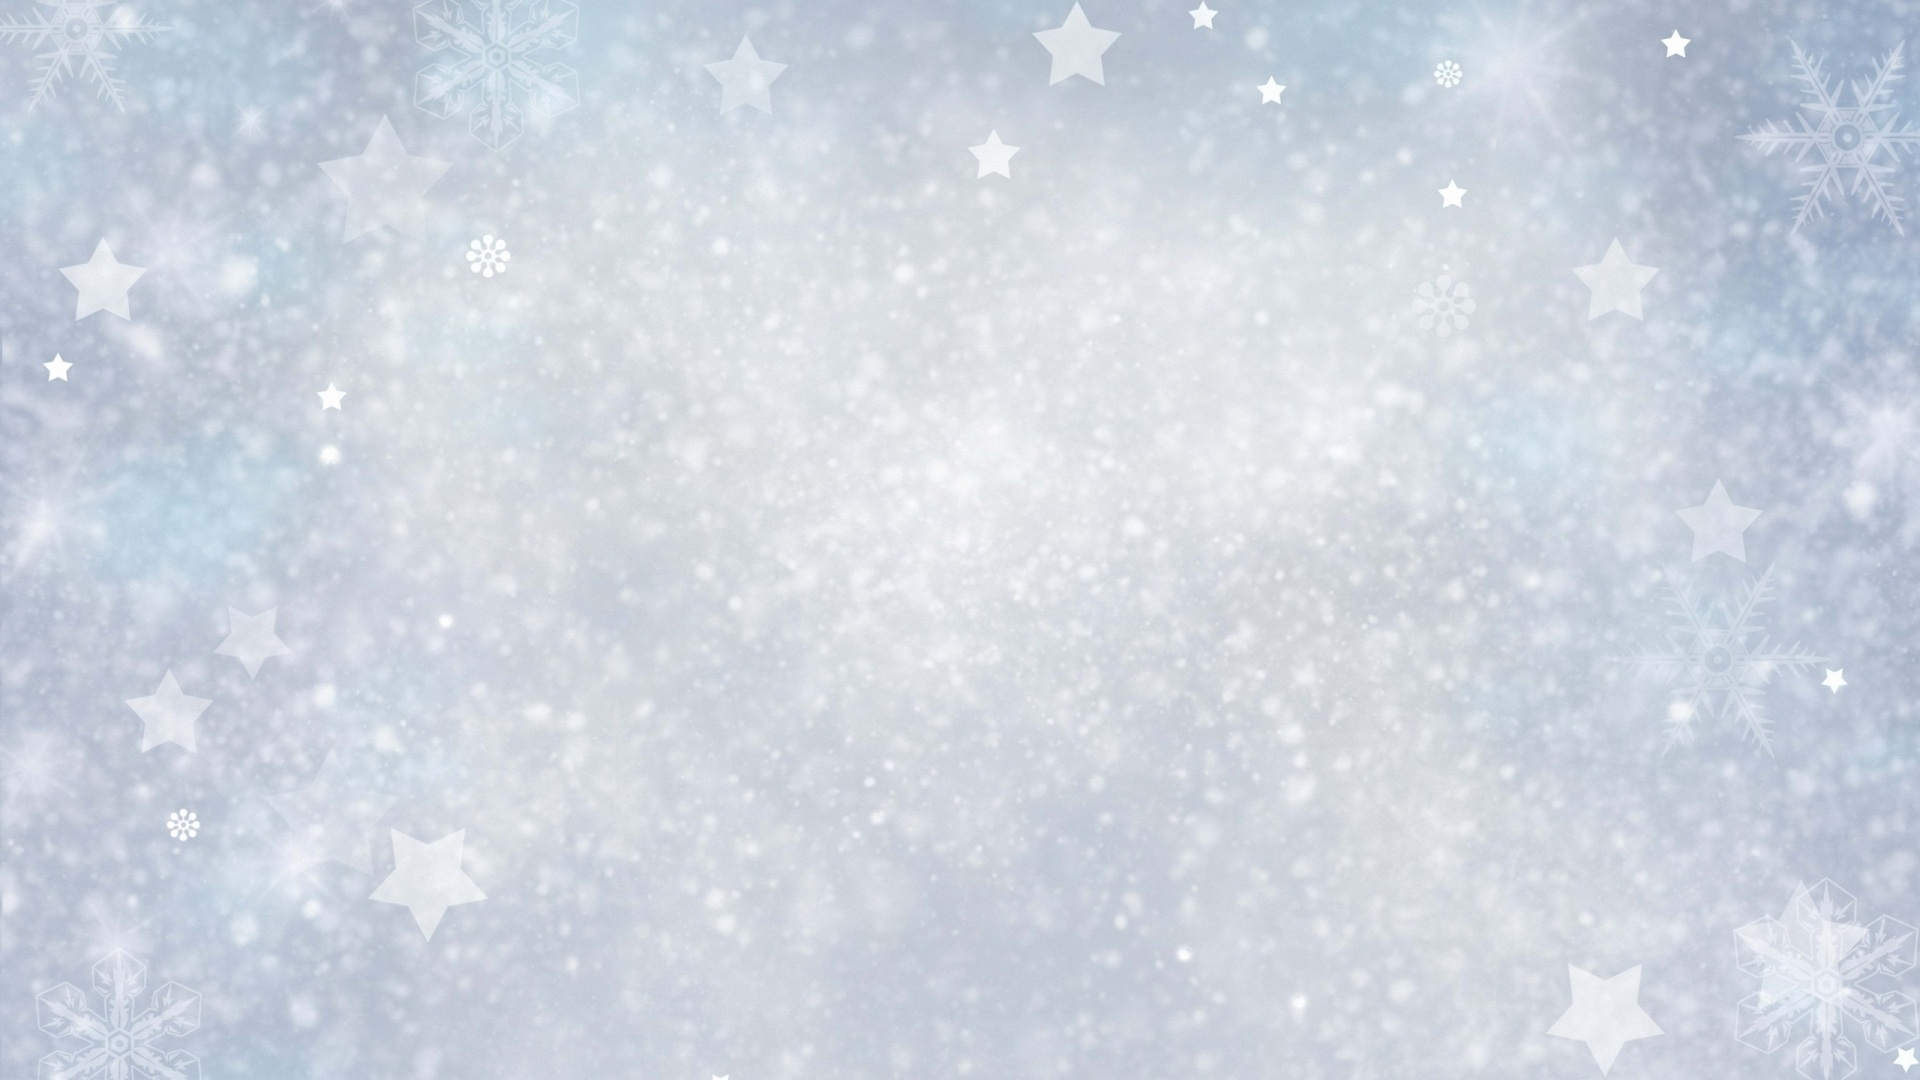 Collection Of Christmas Snowflakes Wallpaper On HDWallpapers 1920x1080